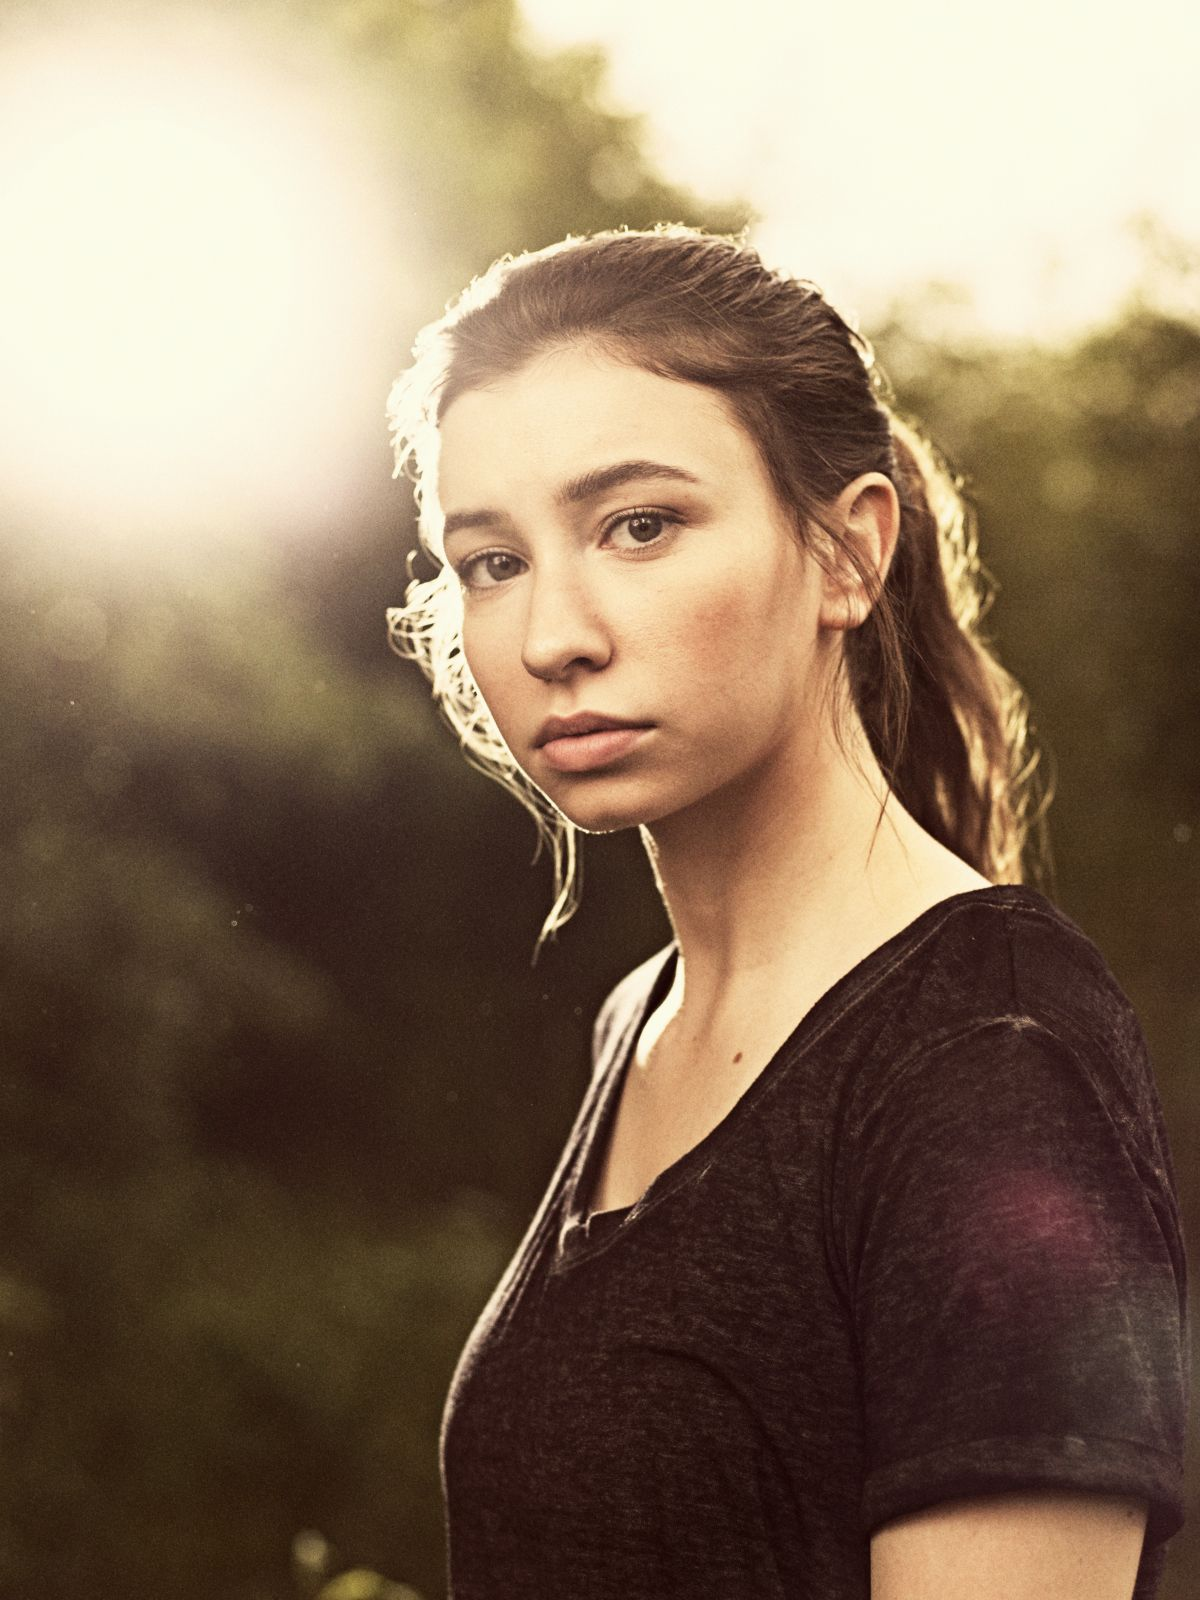 Katelyn Nacon as Enid - The Walking Dead _ Season 9, Gallery- Photo Credit: Victoria Will/AMC